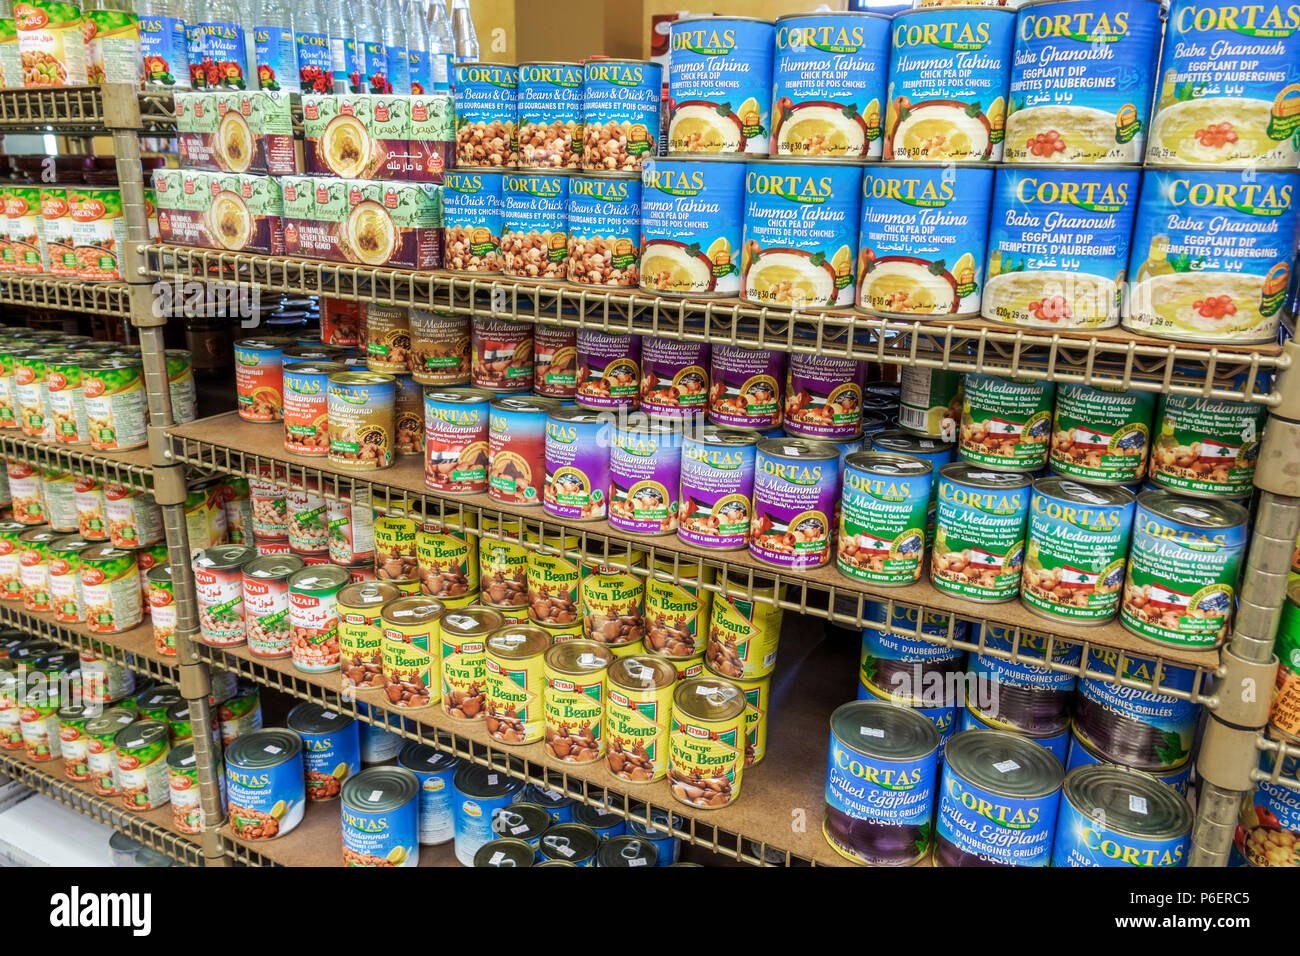 Miami Florida Coral Gables Original Daily Bread Marketplace Gourmet Middle  Eastern Food Store Market Restaurant Shelves Beans Cans Hummus Baba  Ghanoush ...